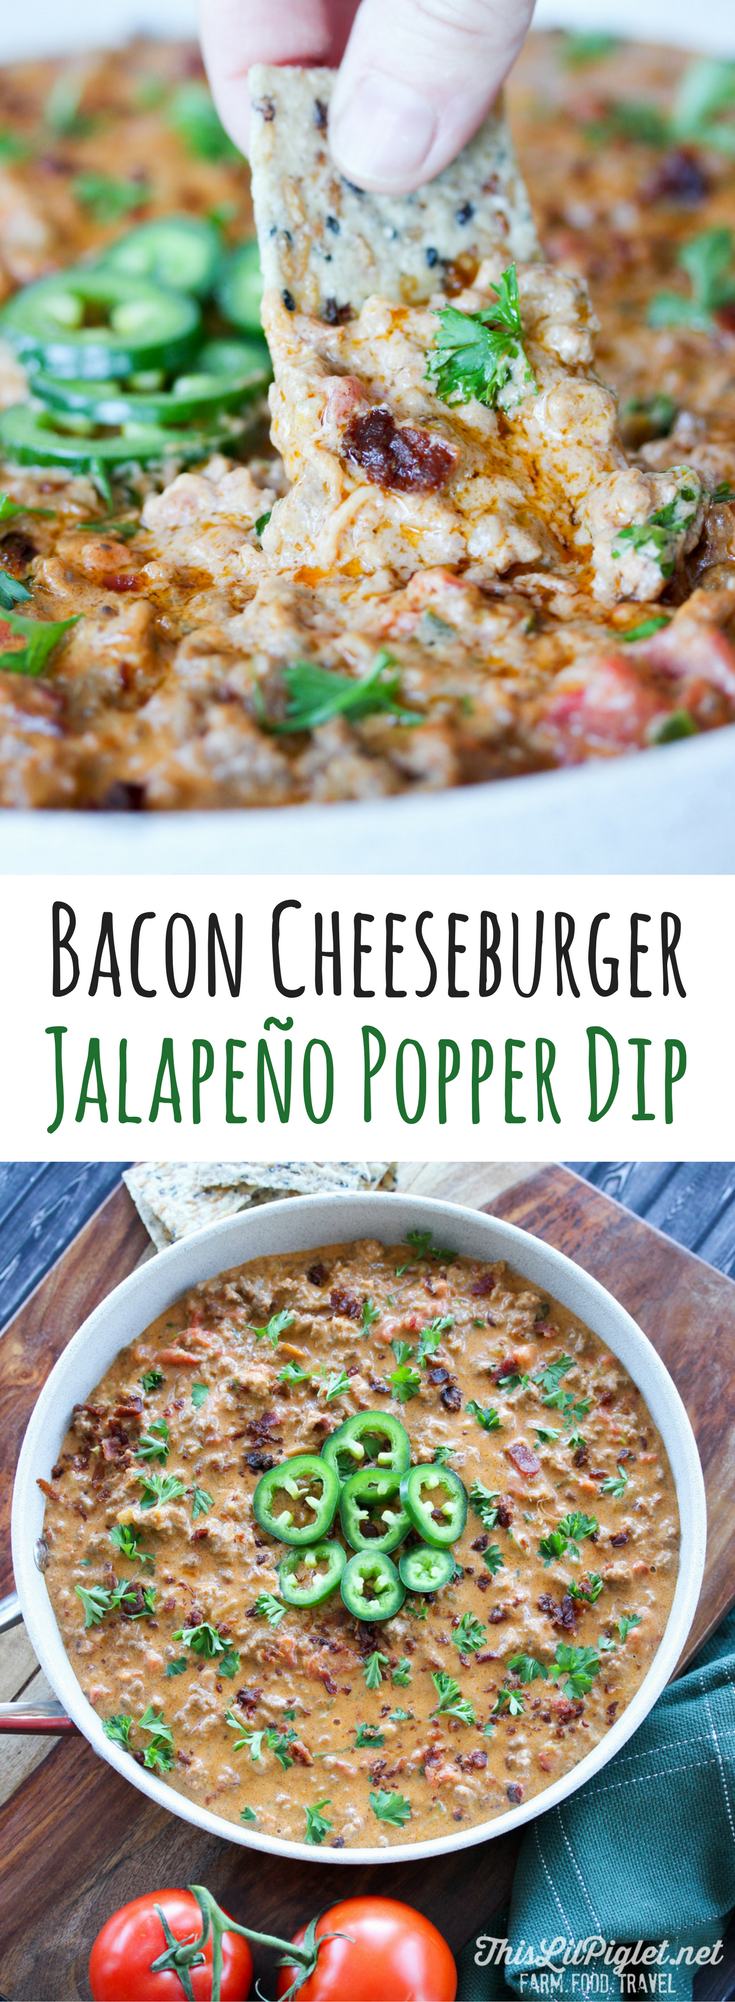 Bacon Cheeseburger Jalapeño Popper Dip - holiday entertaining with appetizers guests love // thislilpiglet.net